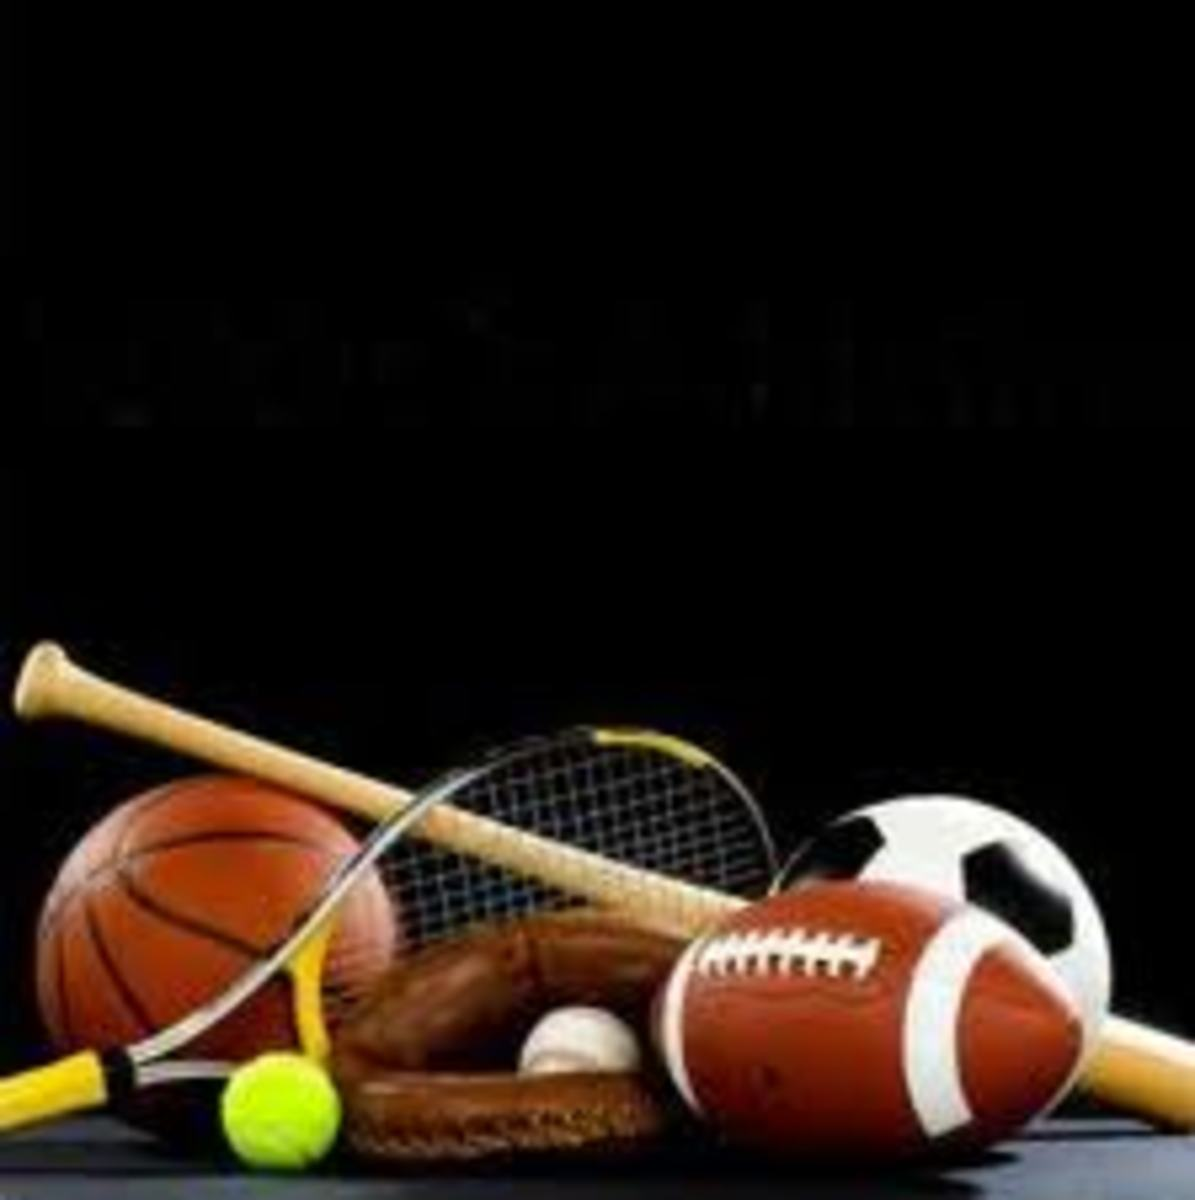 Sports equipment kept in closed cupboard